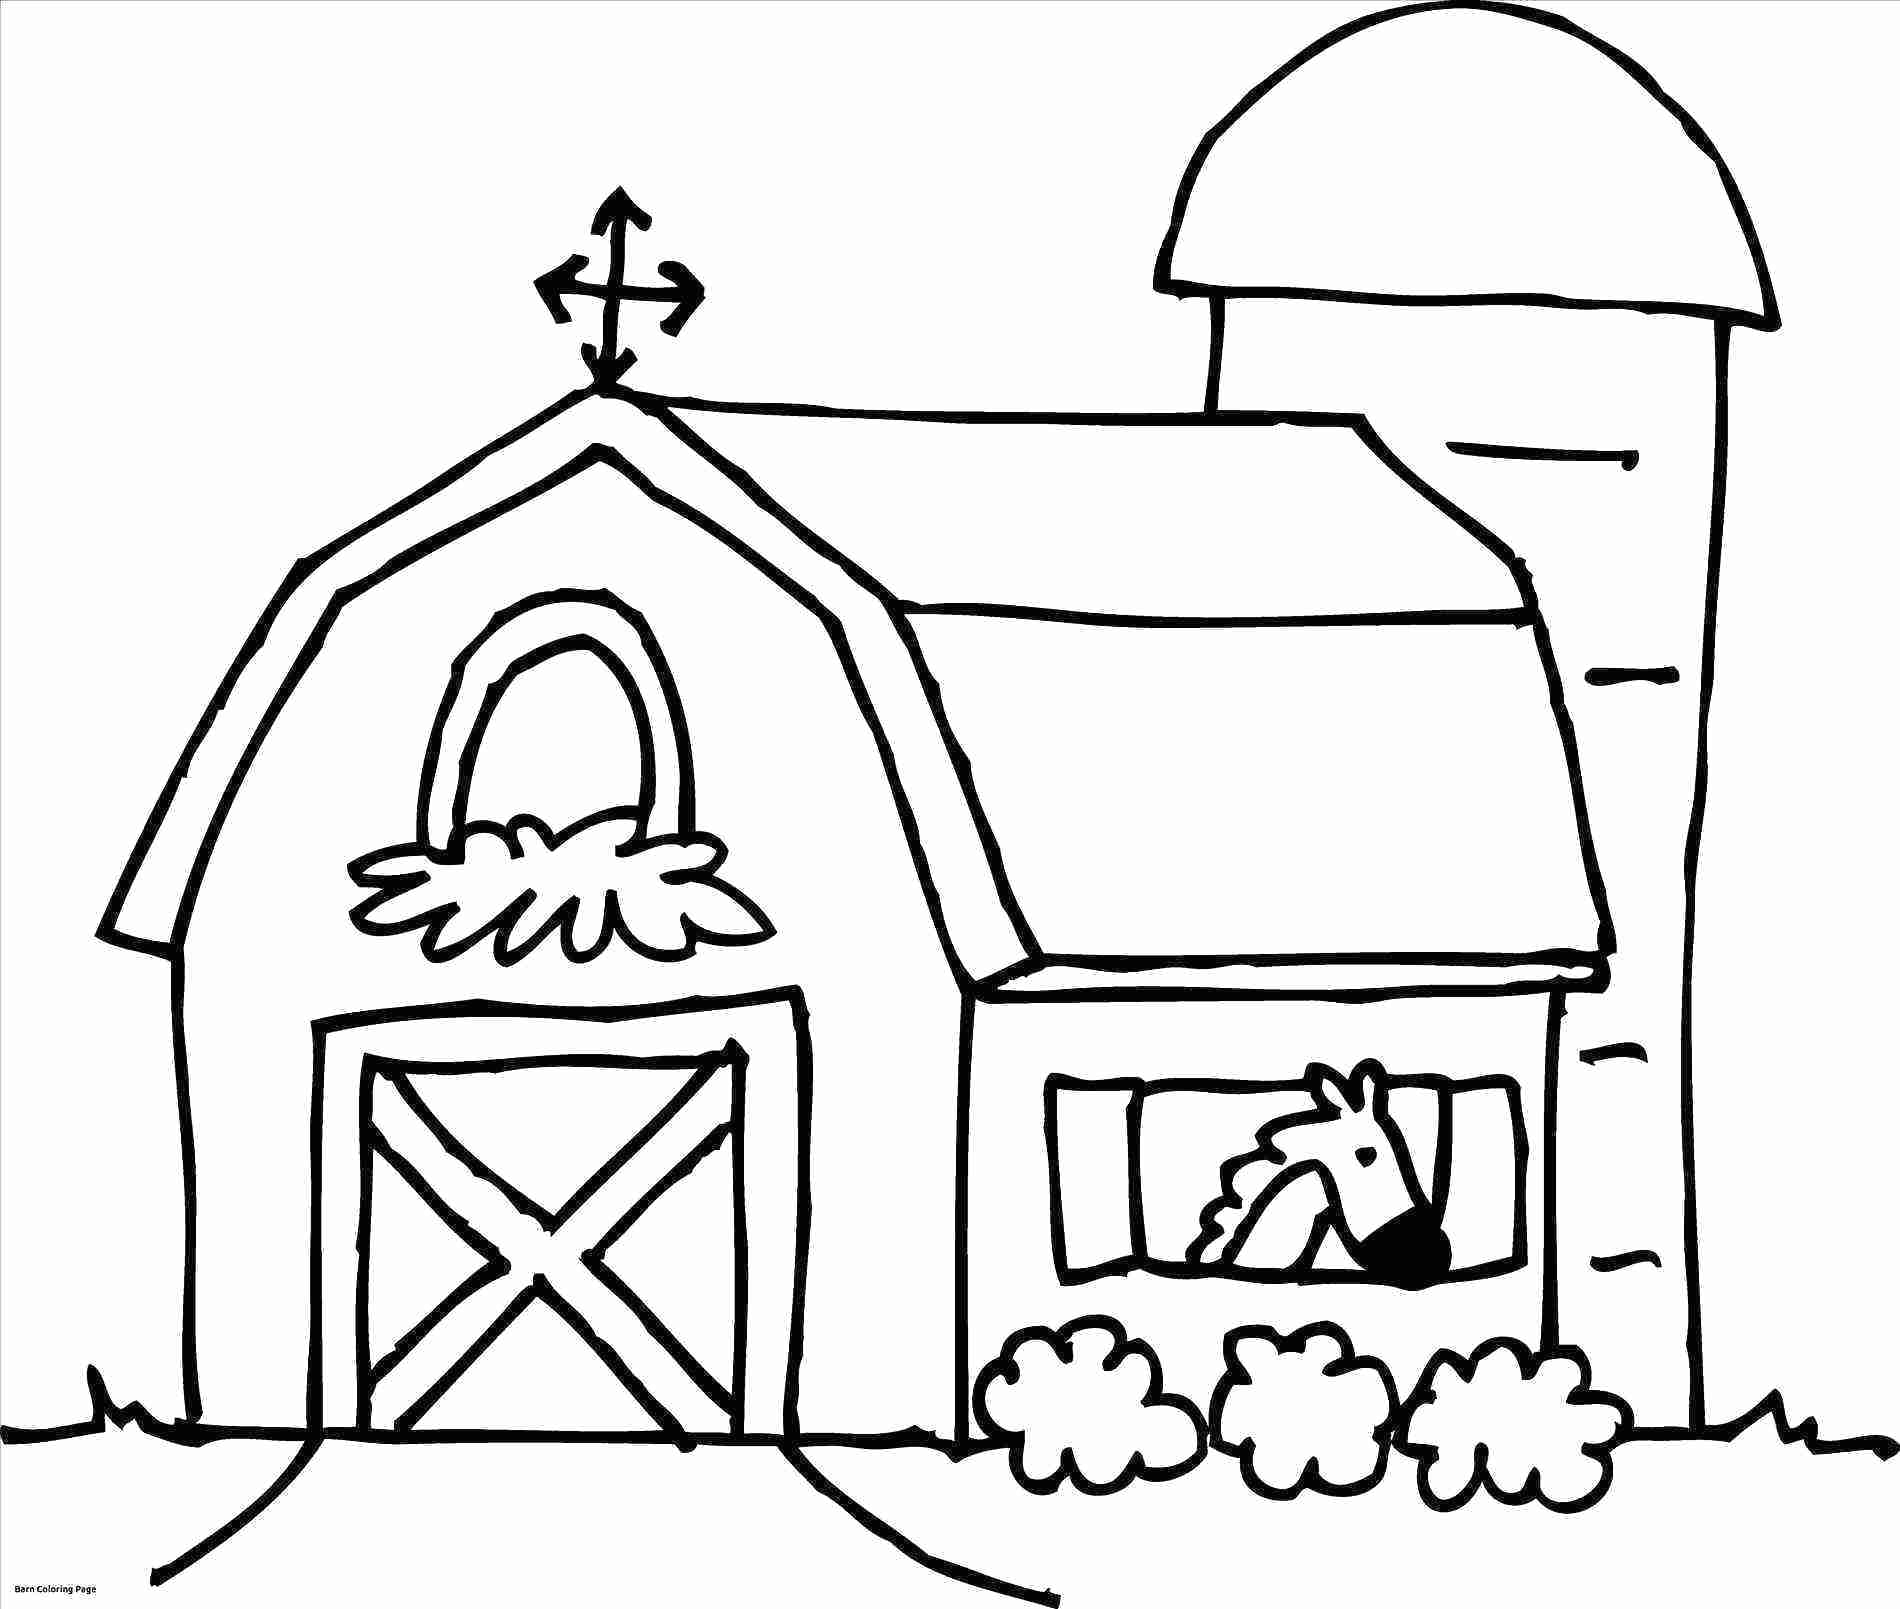 Free clipart printable black and white coloring pages barns. Jackpotprint co